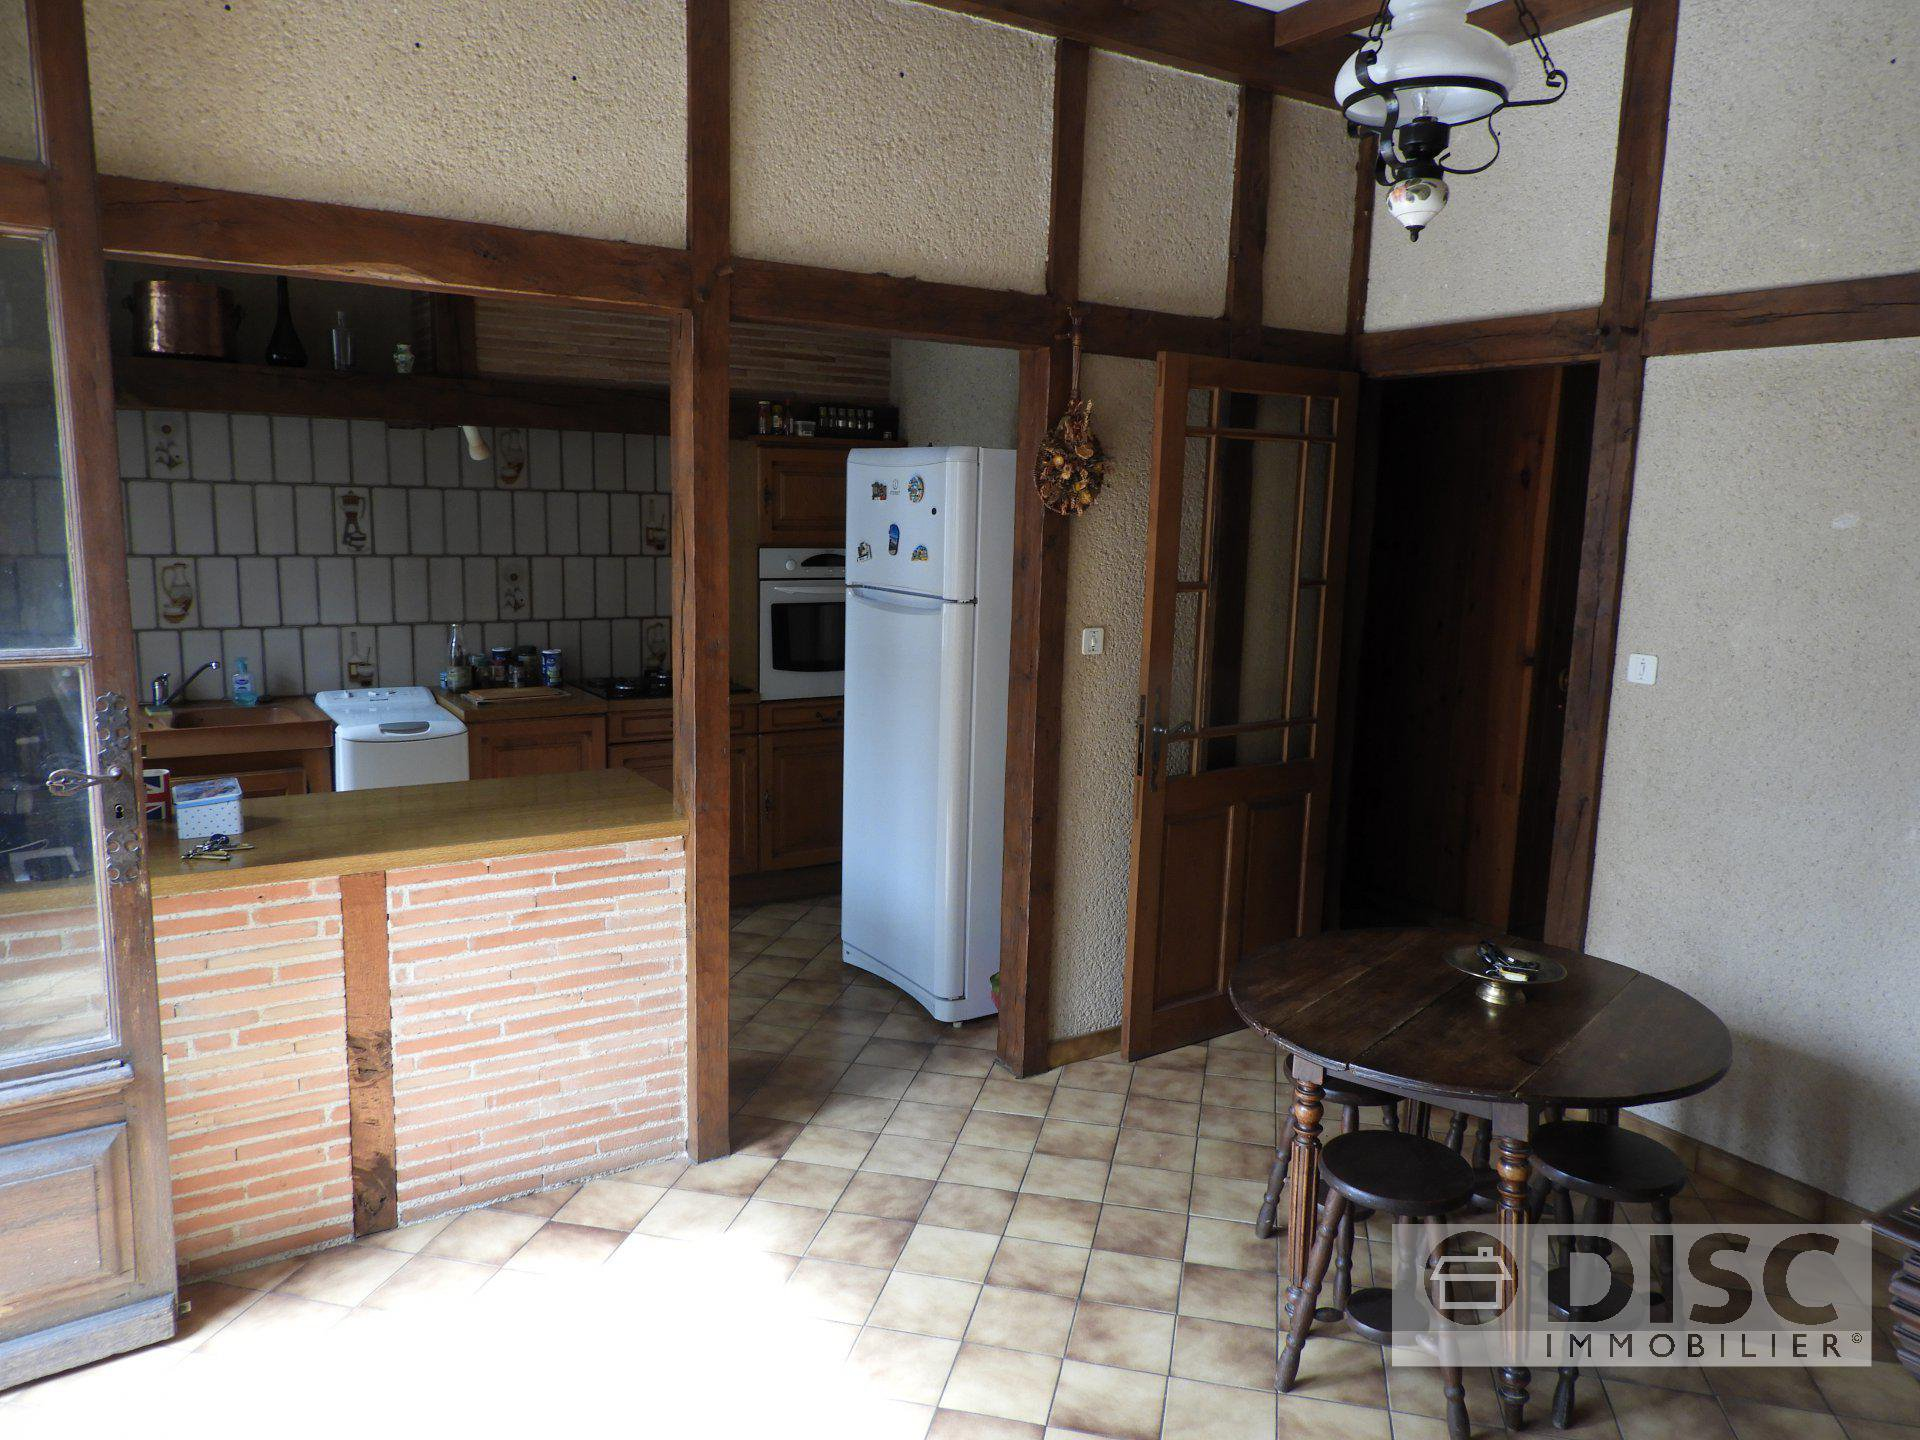 Spacious village house with garage and detached garden.